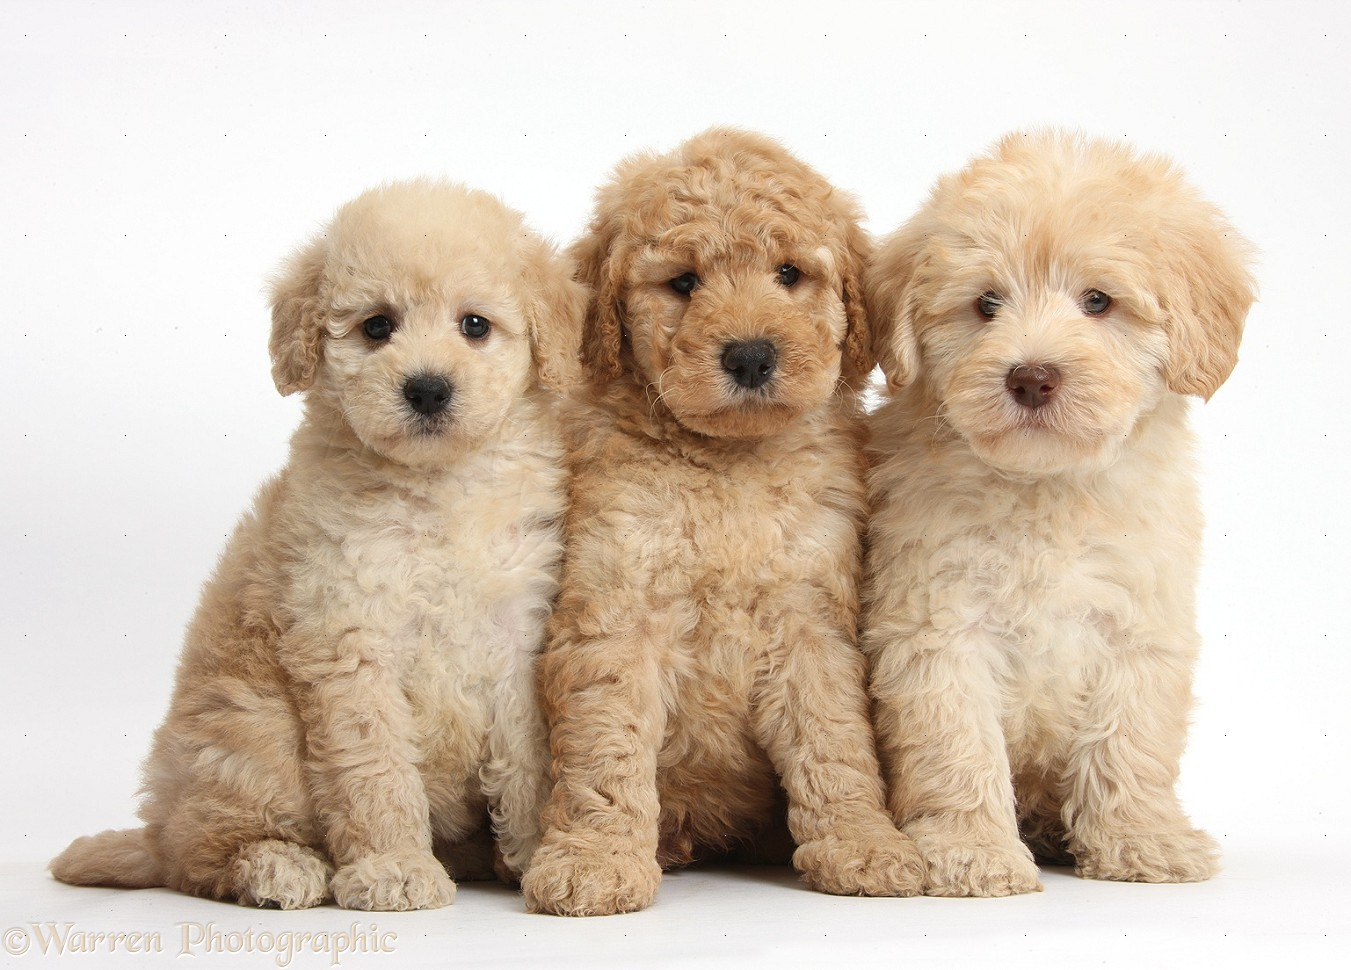 Dogs Three Cute Toy Goldendoodle Puppies Photo Wp37999